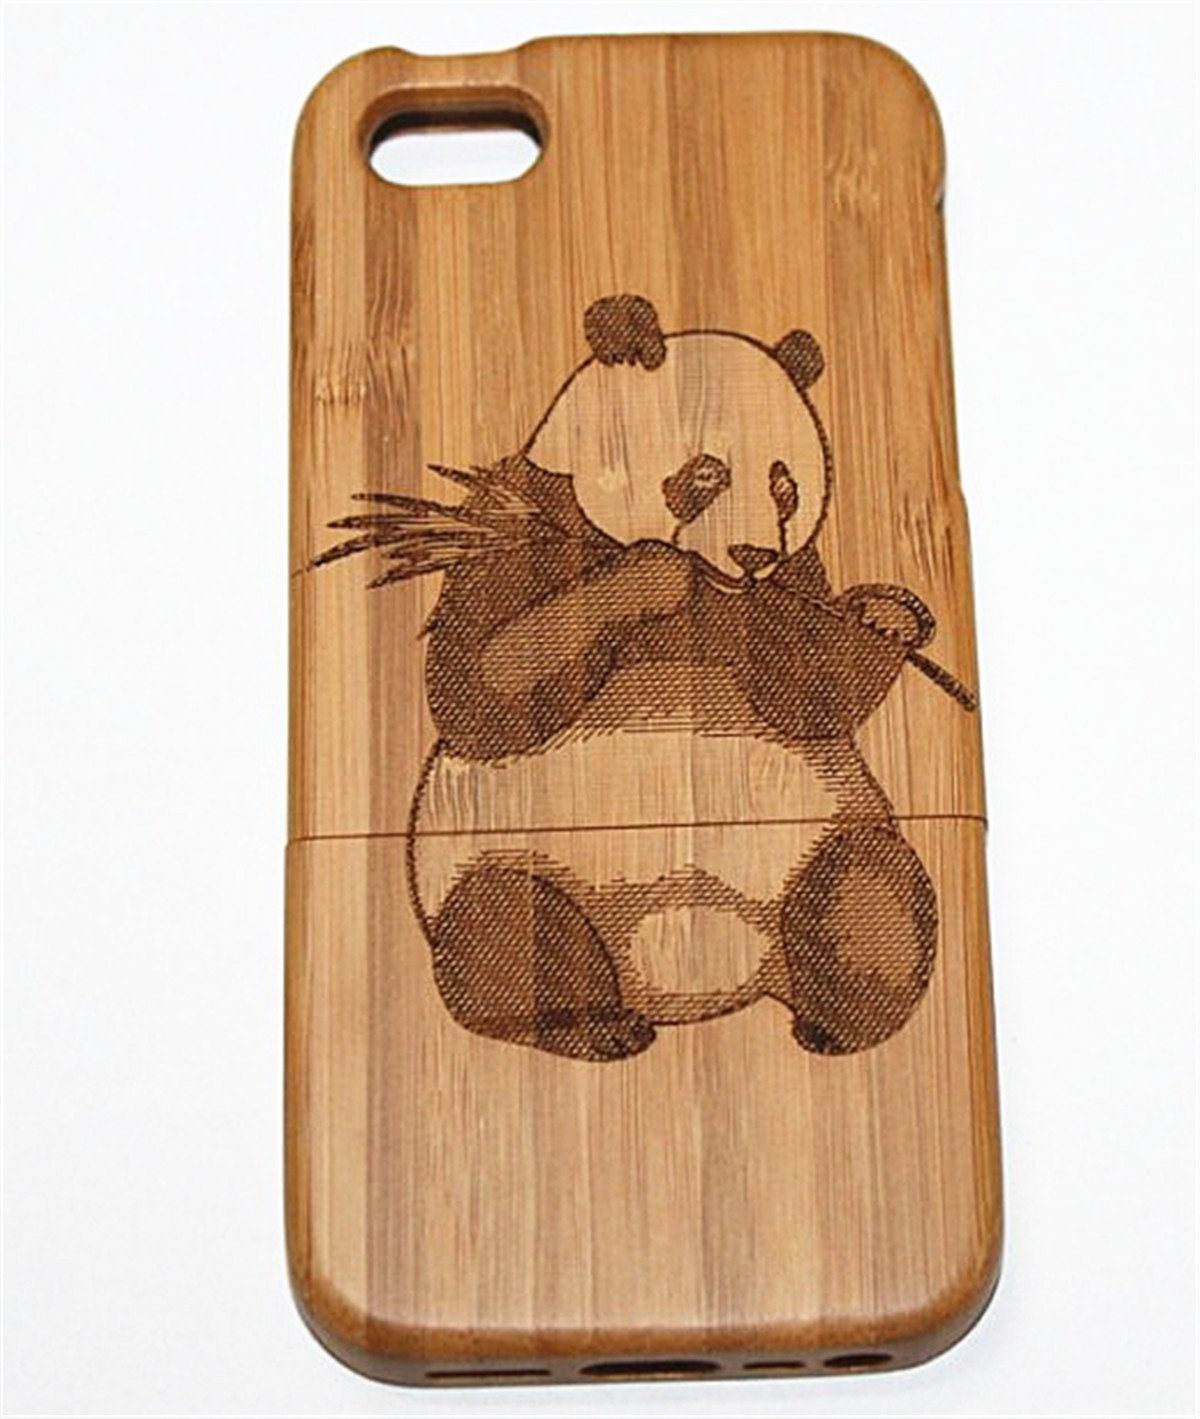 iPhone 6/6S Case, Firefish Panda Pattern Natural Handmade Hard Wood Case Cove With Laser Engraved Shock & Scratch Protective For iPhone 6/6S ( With A Stylus) -Panda